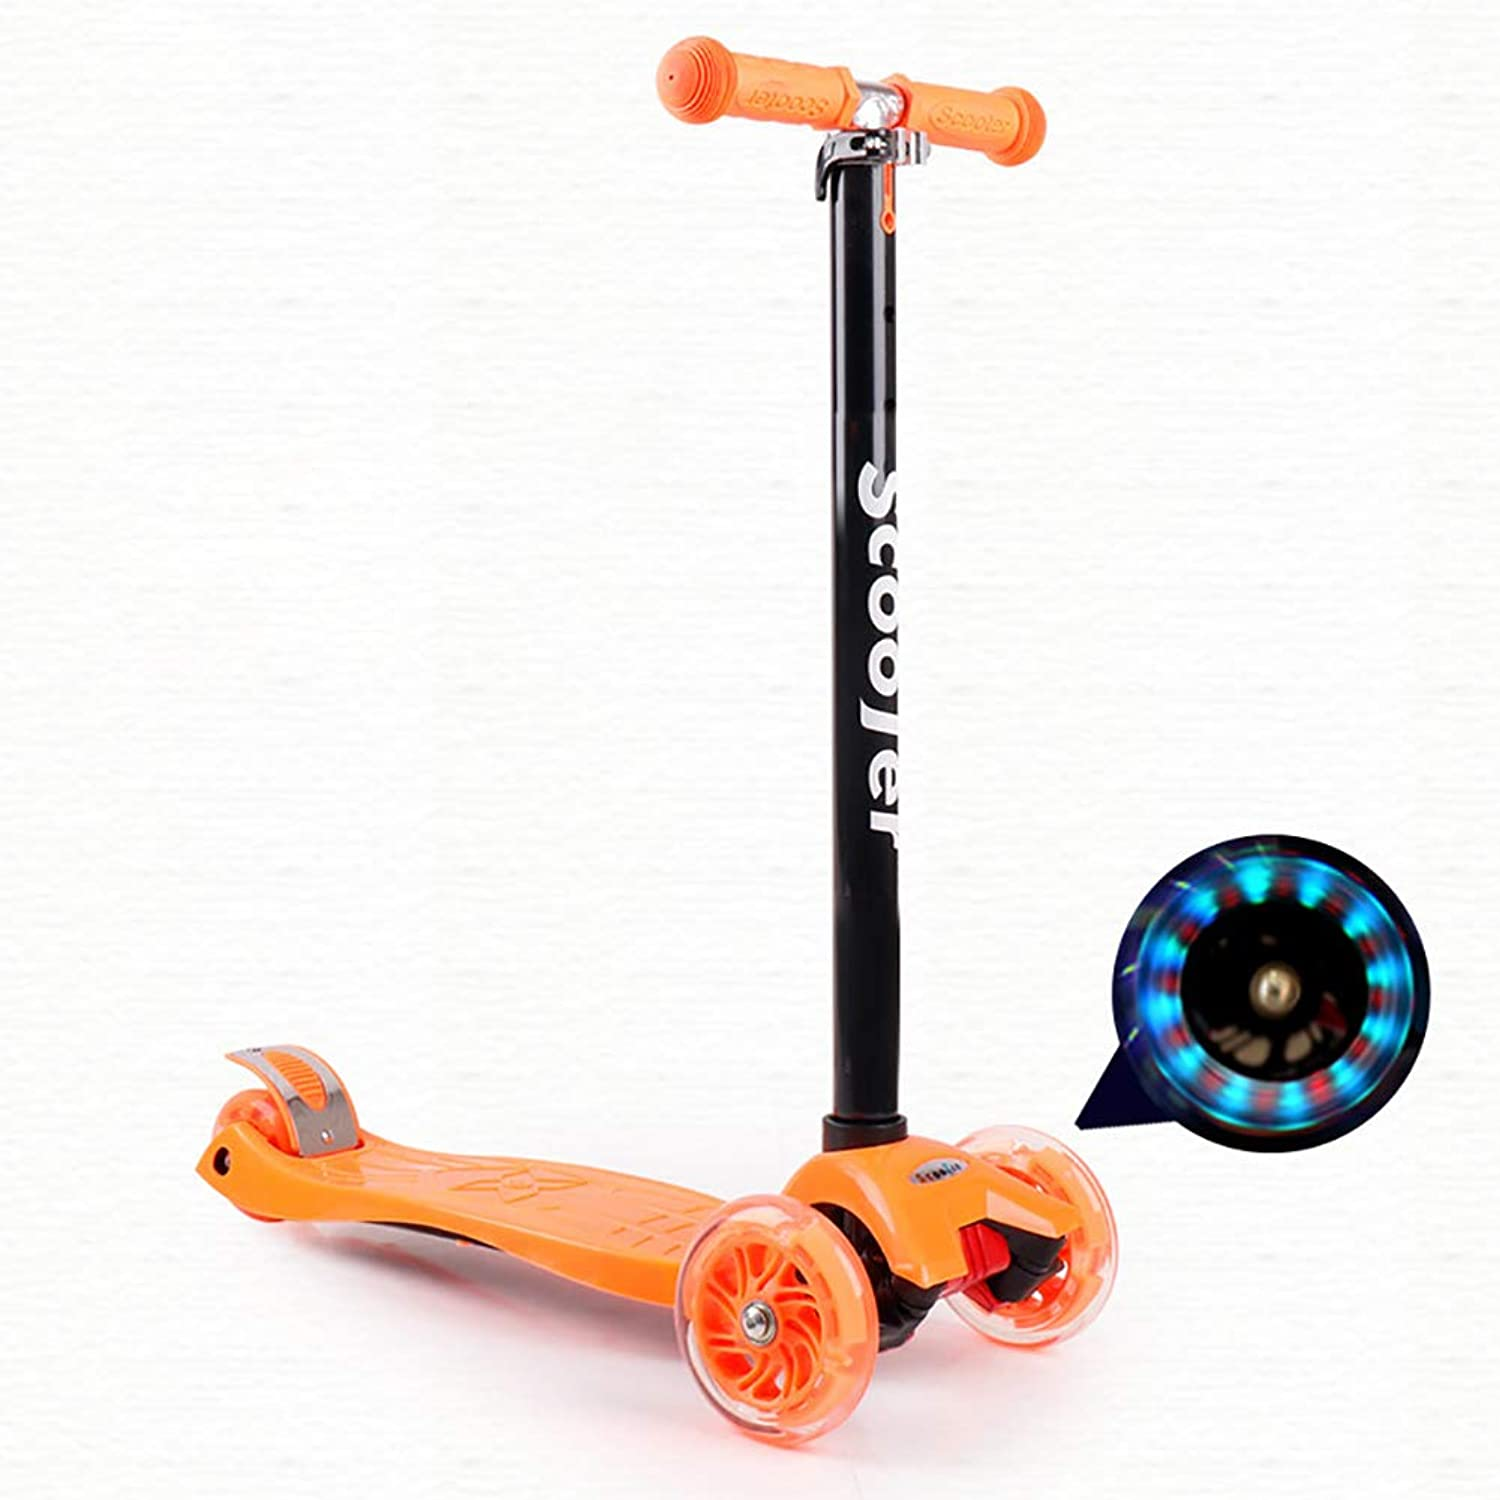 HYYK Kids Scooter 3 Wheel Lightweight Scooter for Toddler with LED Light Up Wheels, Tilt and Turn Adjustable Height for Boys Girls Scooter Age 3-12